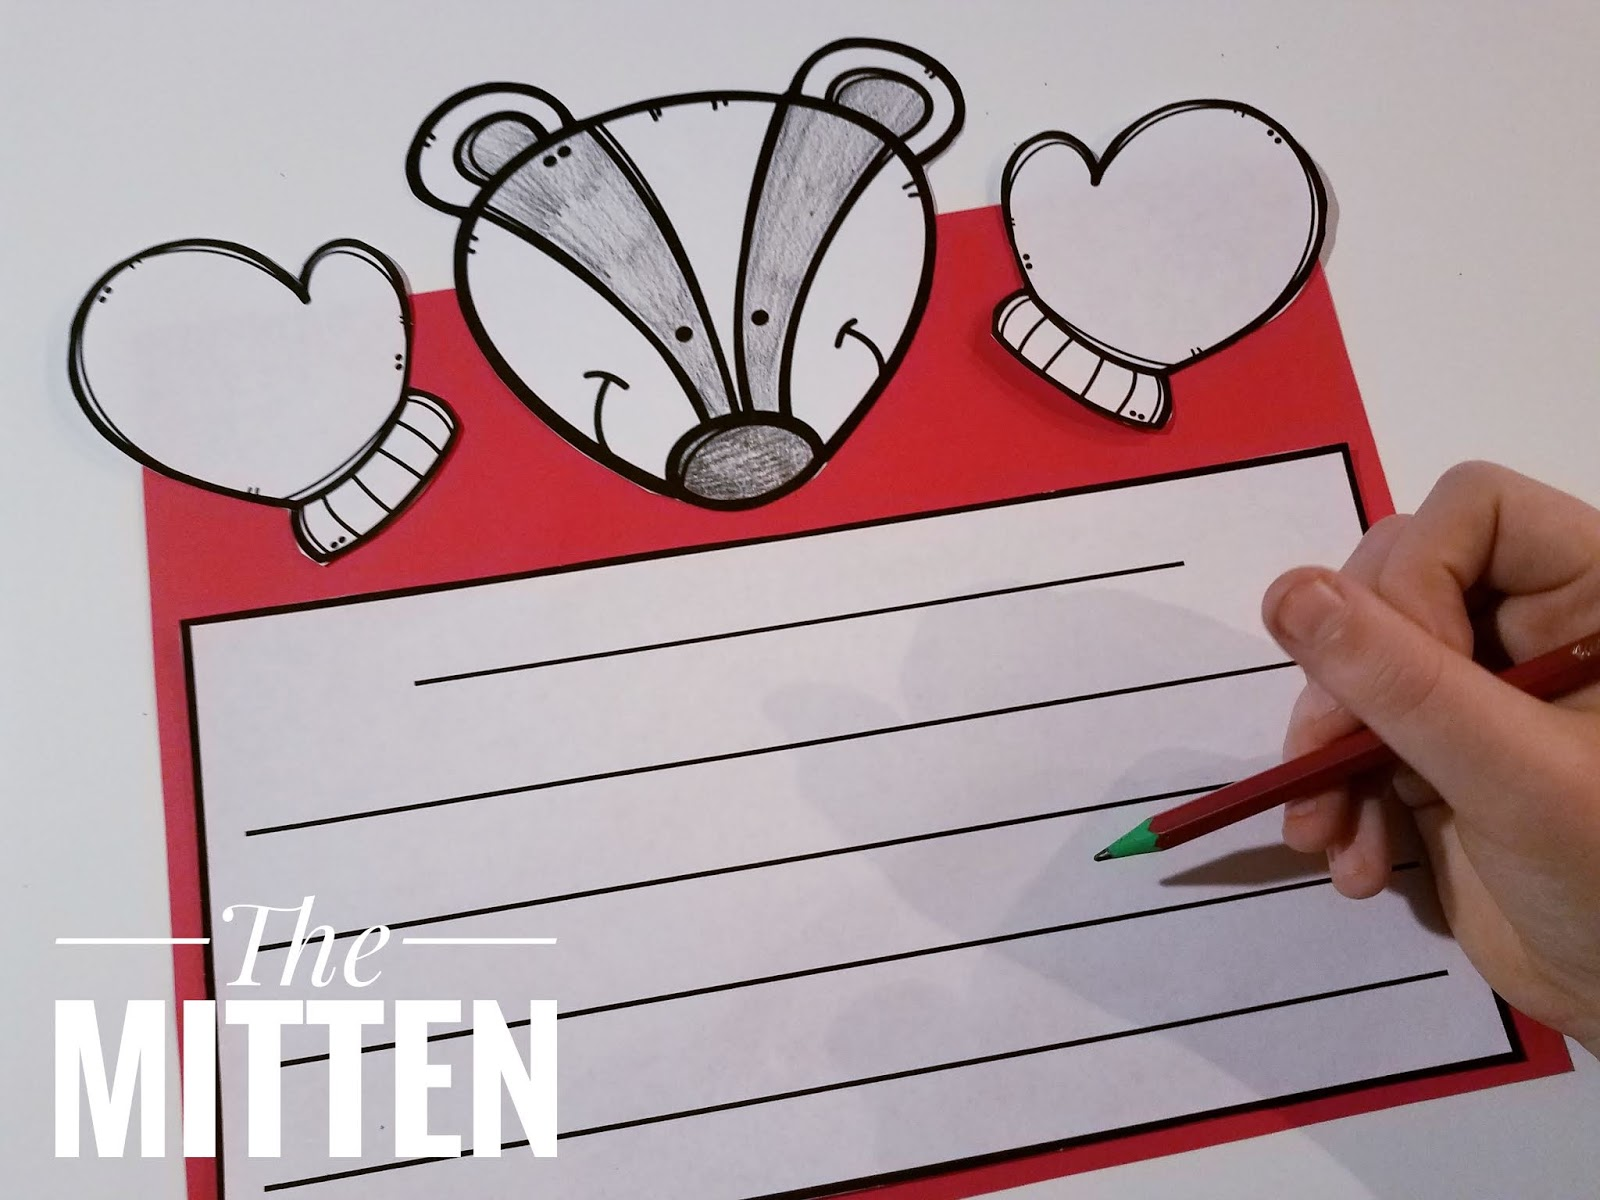 16 Literacy And Math Activities For The Story The Mitten By Jan Brett